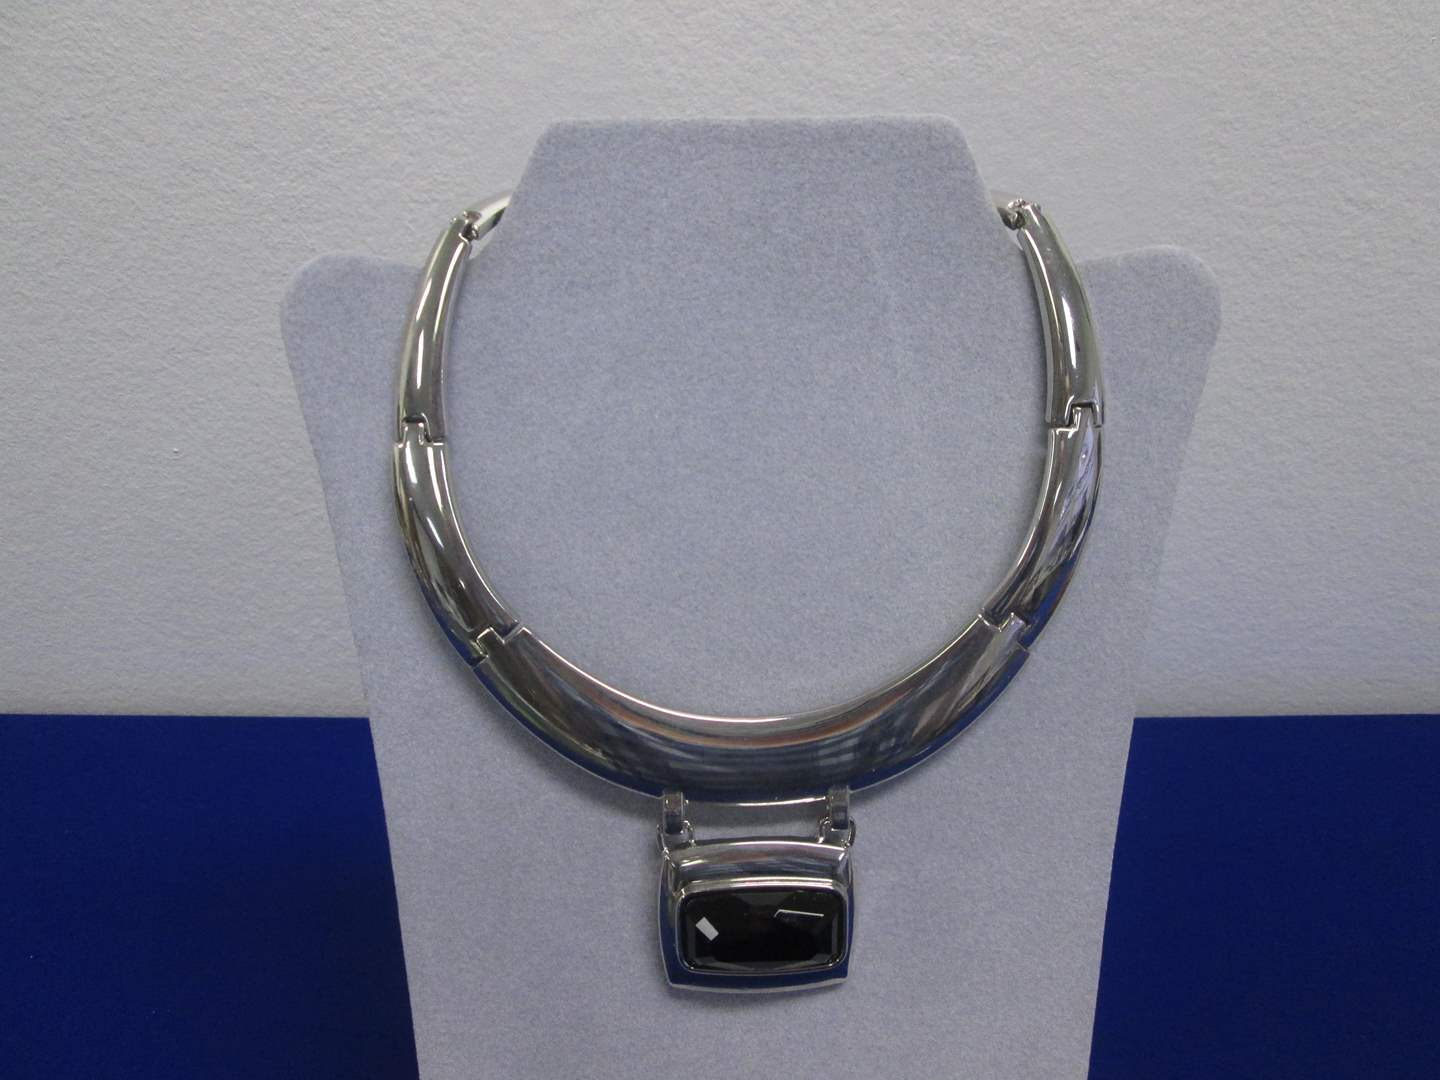 Lot # 133 - Collar-Style Costume Jewelry by White/Black Brand (main image)